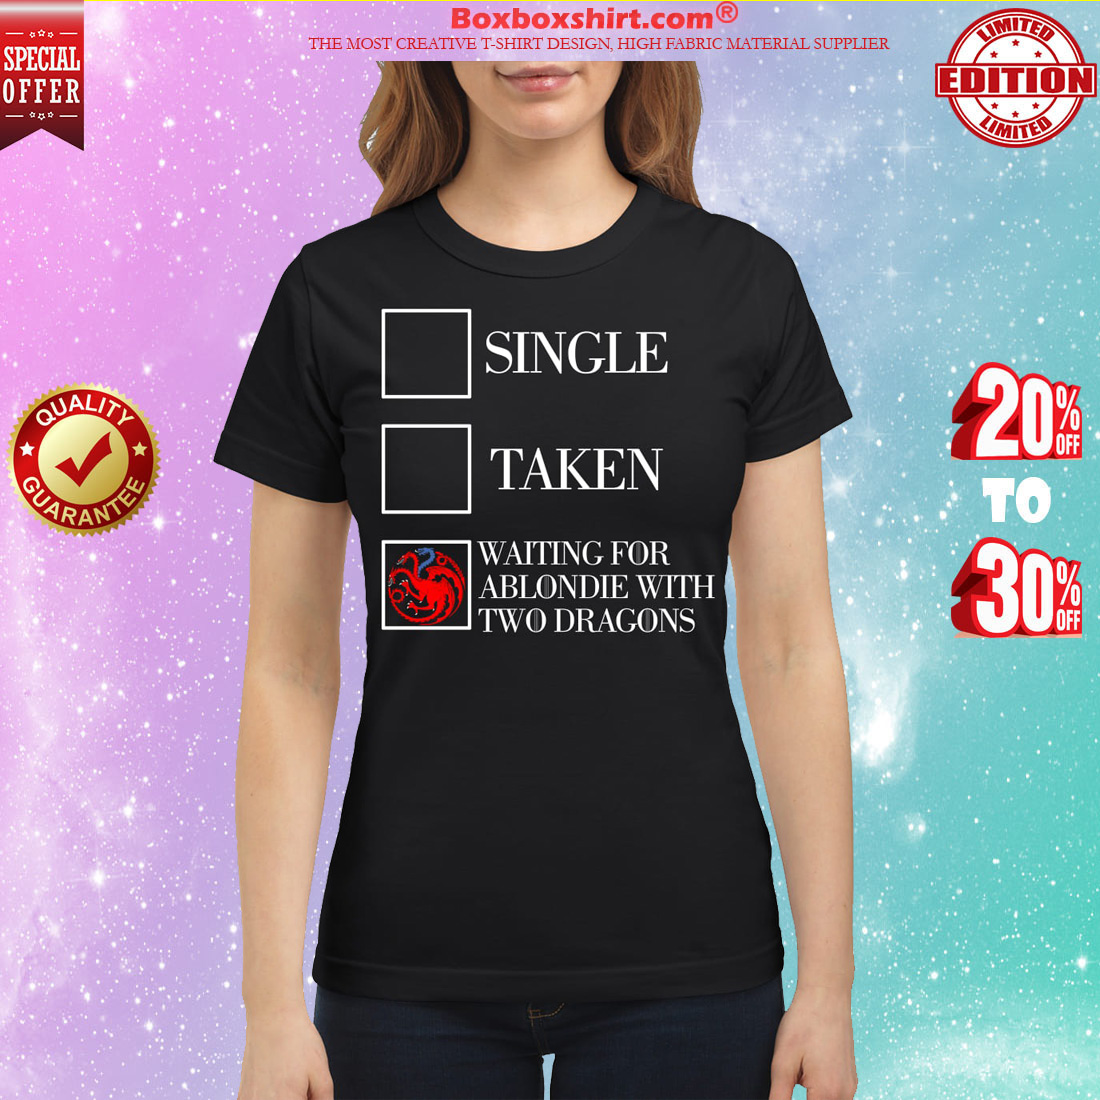 Single taken waiting for a blondie classic shirt